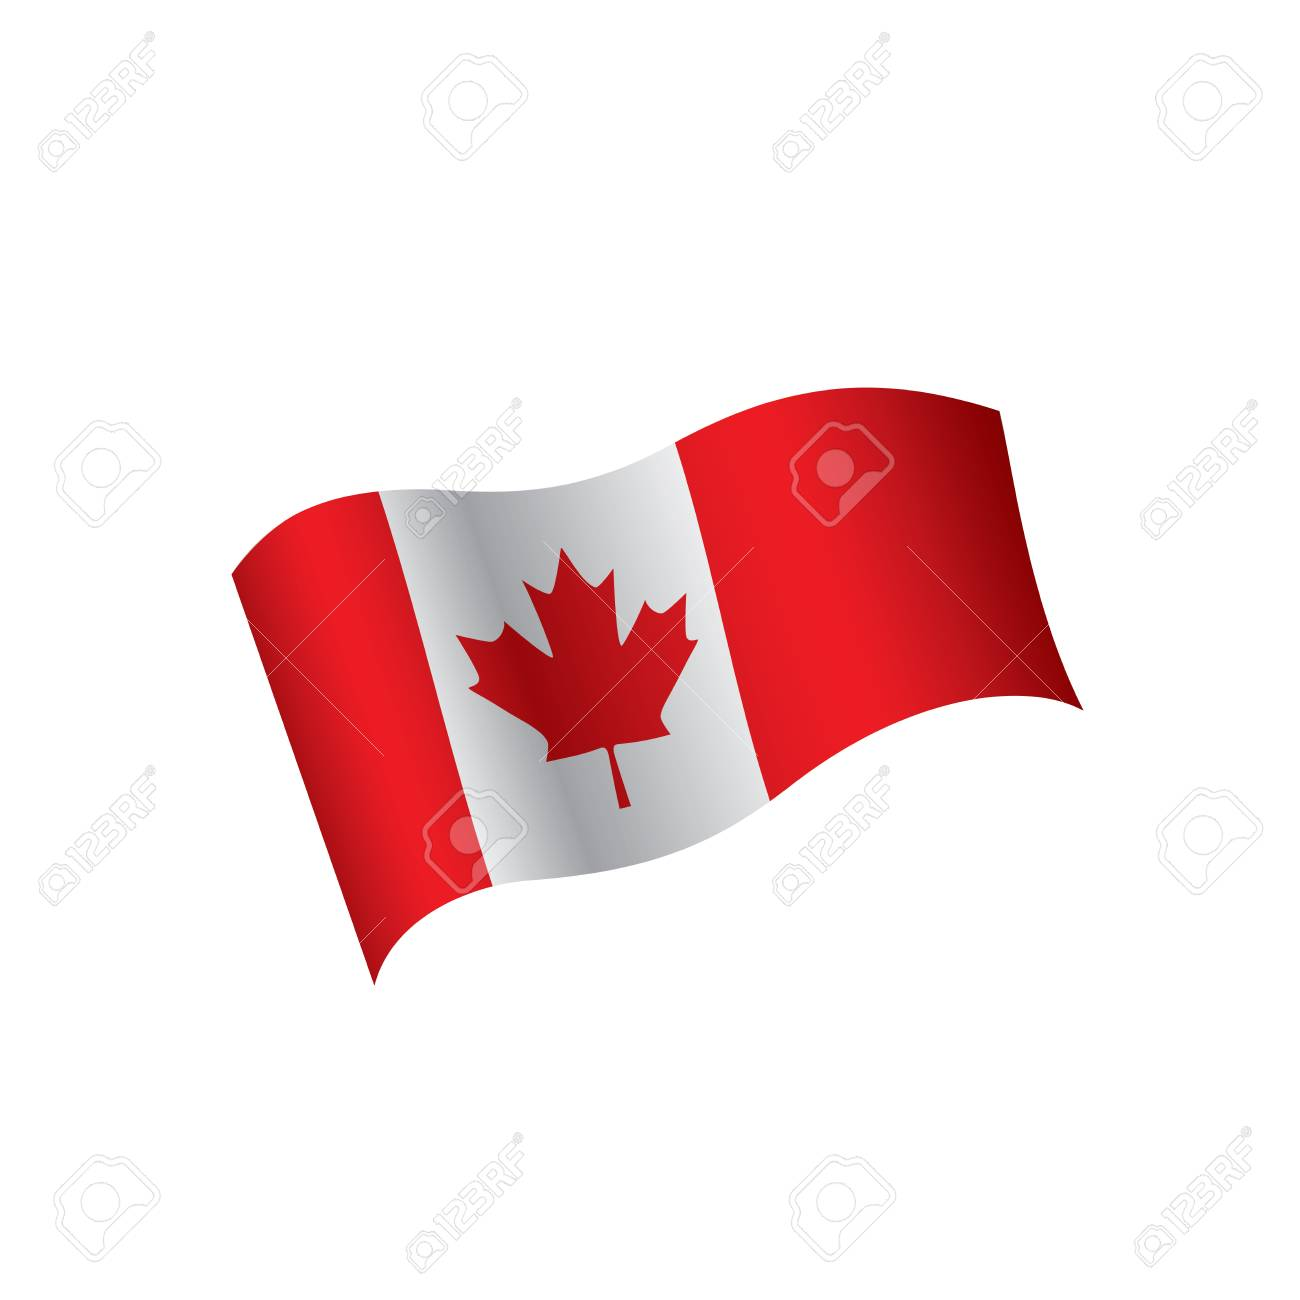 canada flag vector illustration on a white background royalty free rh 123rf com canadian flag vectors free canada flag vector logo